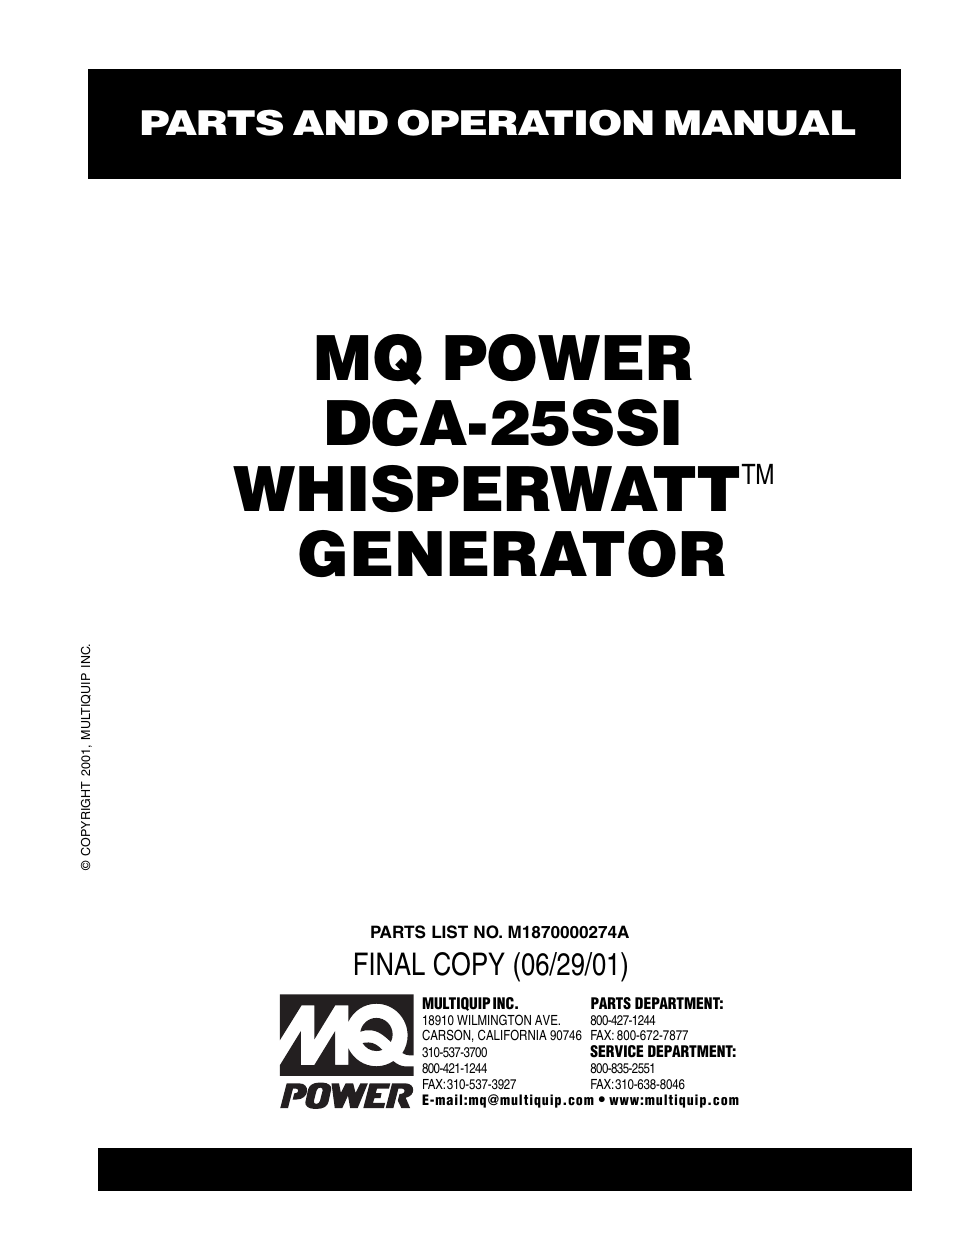 multiquip mq power whisperwatt generator dca 25ssi page1 mq power parts dca 25ssiu2 mq power generator dca 25ssiu2 mq power  at bakdesigns.co